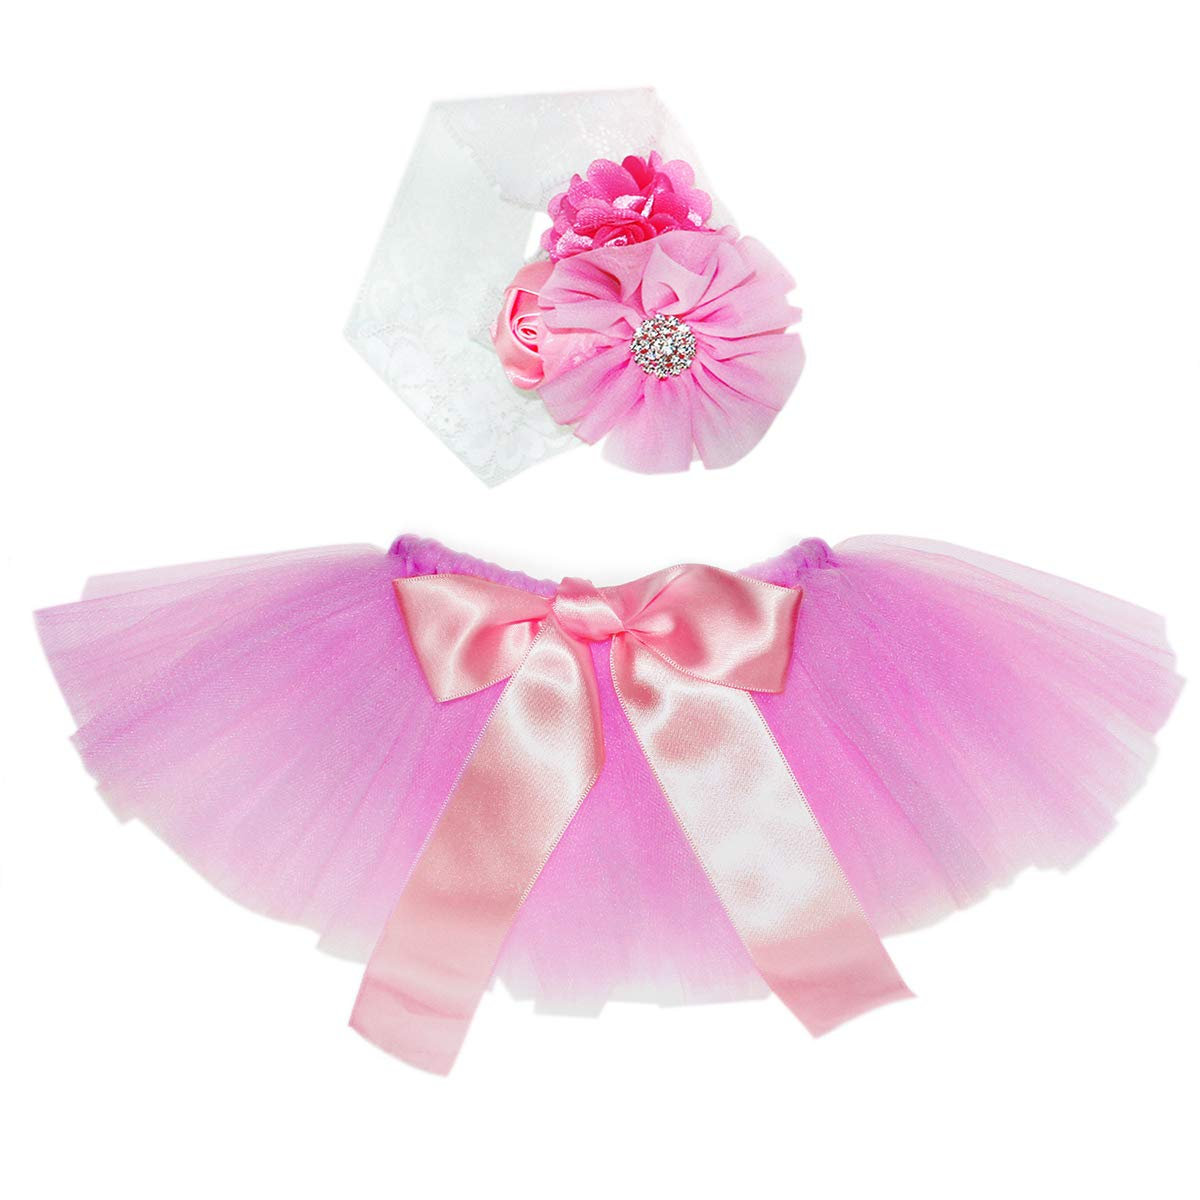 Newborn Girl Photography Outfits - Infant Photography Props/Baby Girl Photo Props - Pink Newborn Tutu Skirt and Headband Set